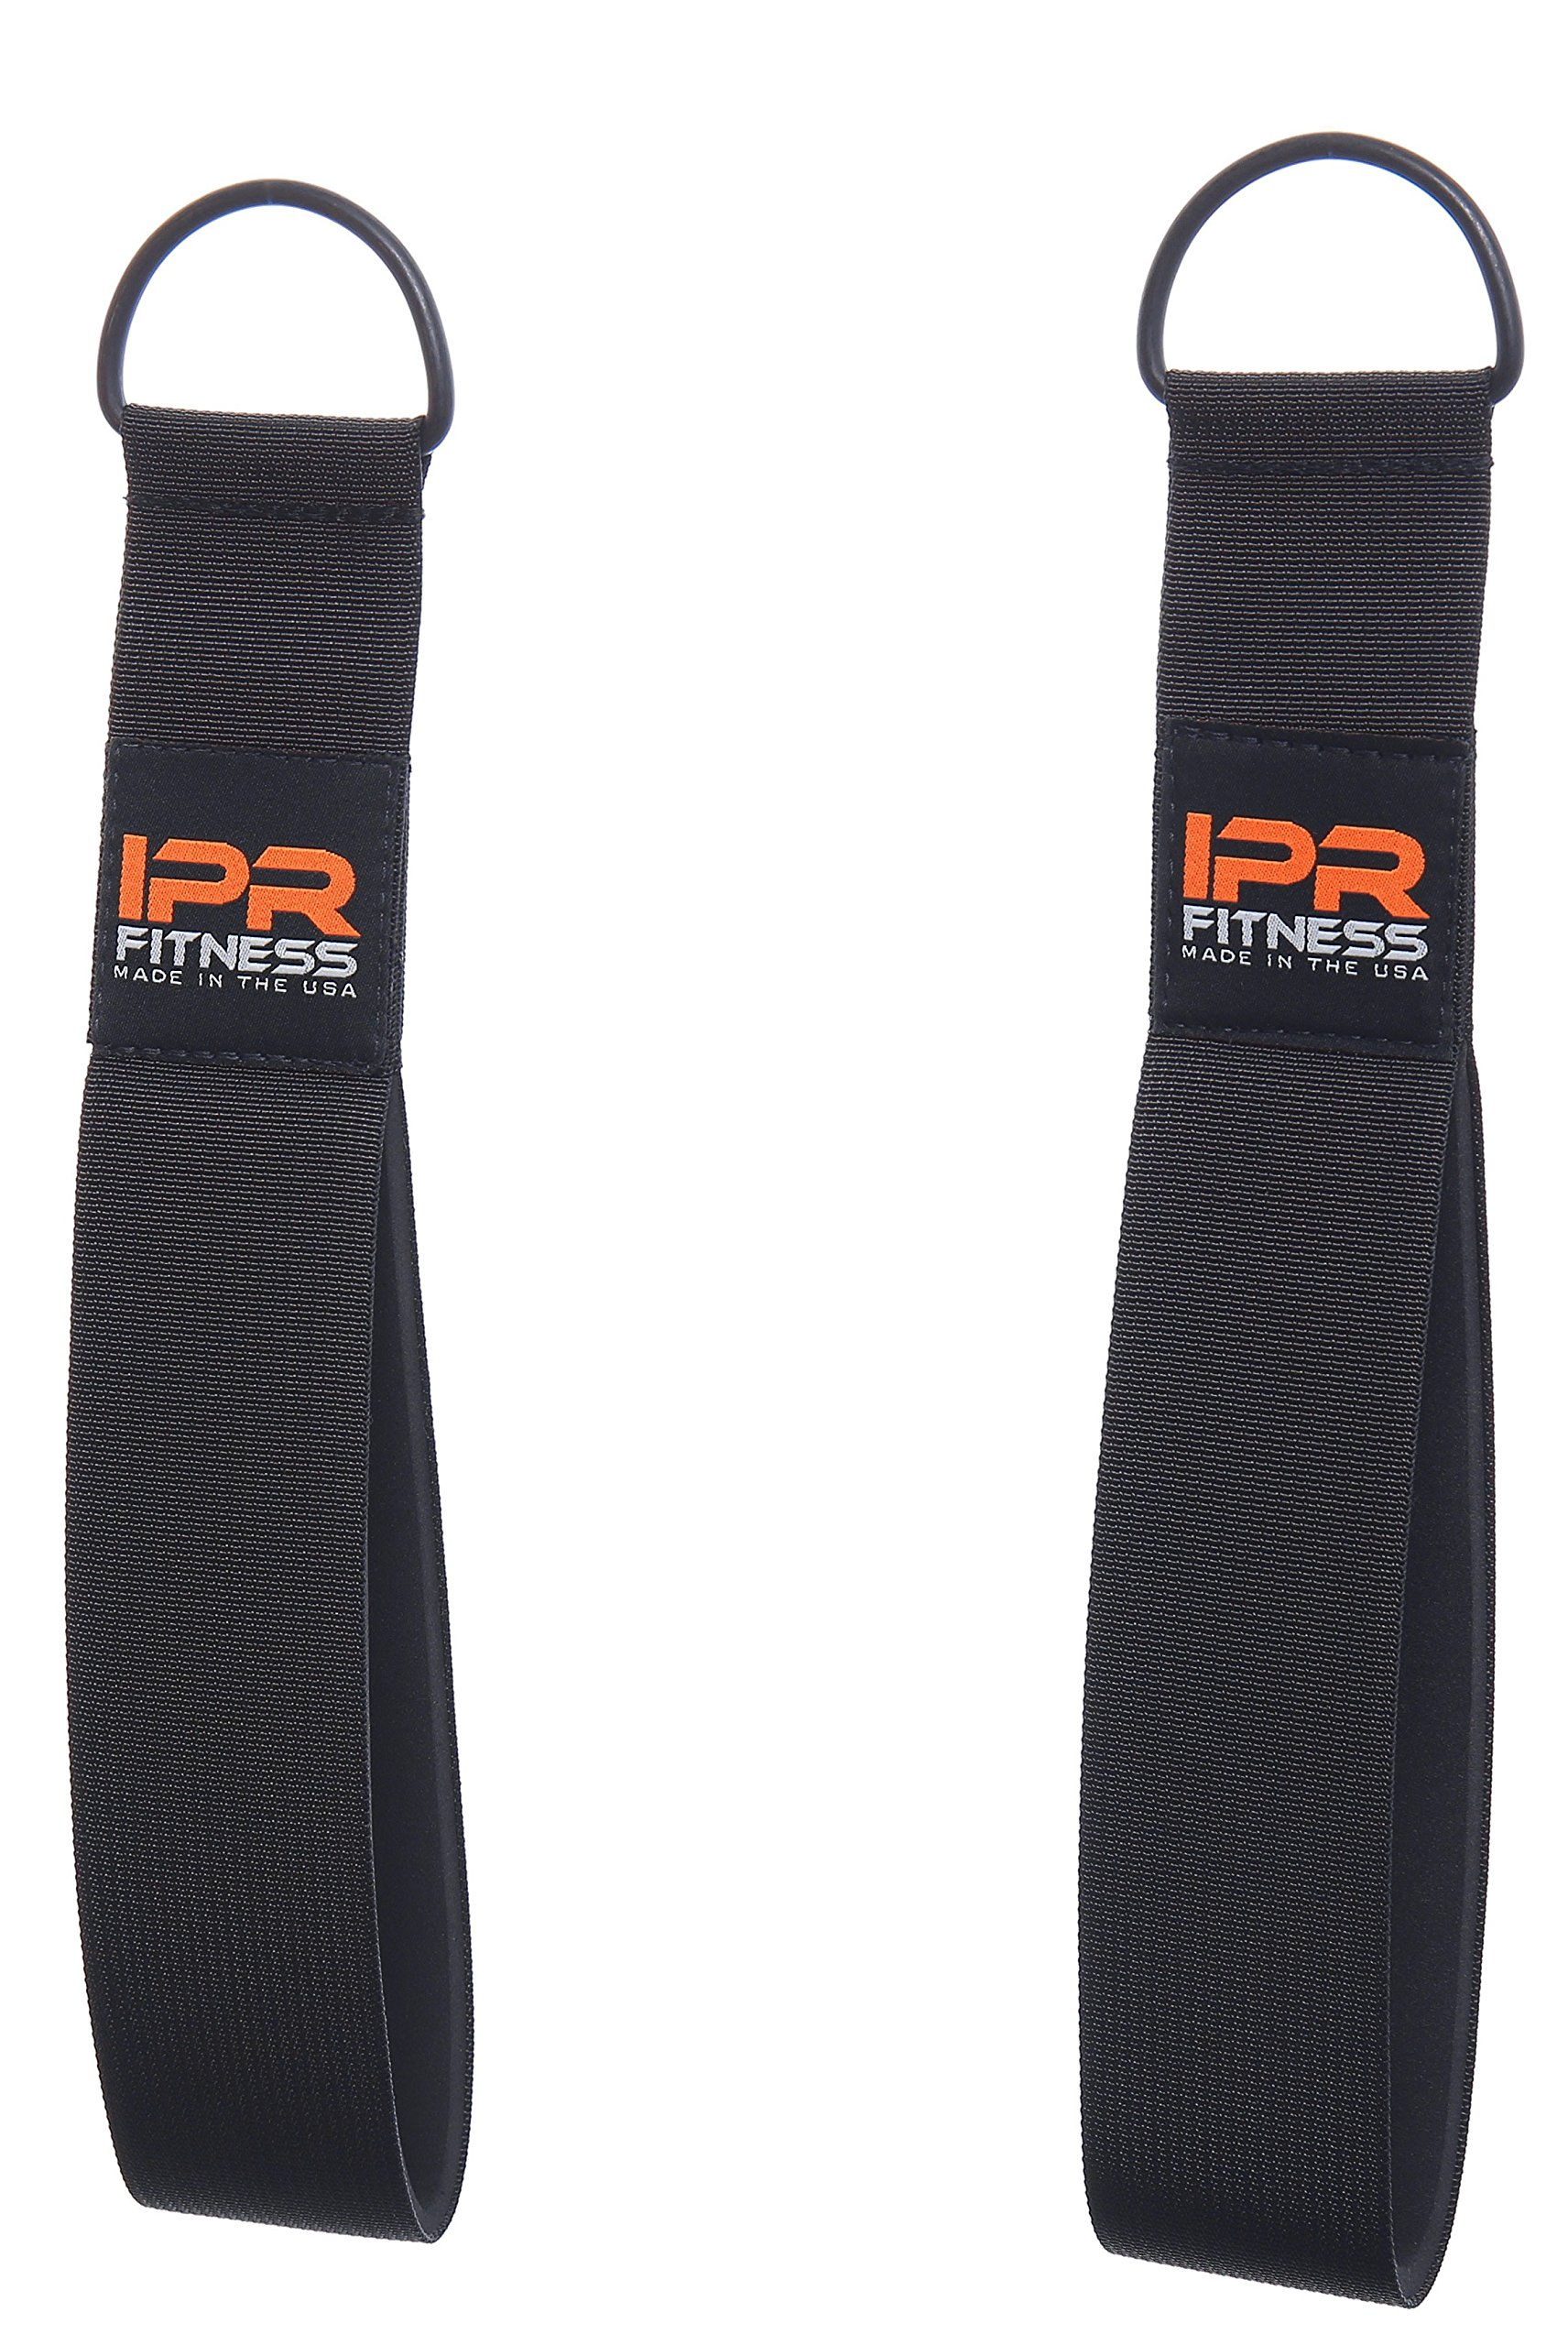 "IPR Fitness® Iso Handle LITE ""Patent Pending"" Gym Exercise Handle - Made in the USA"